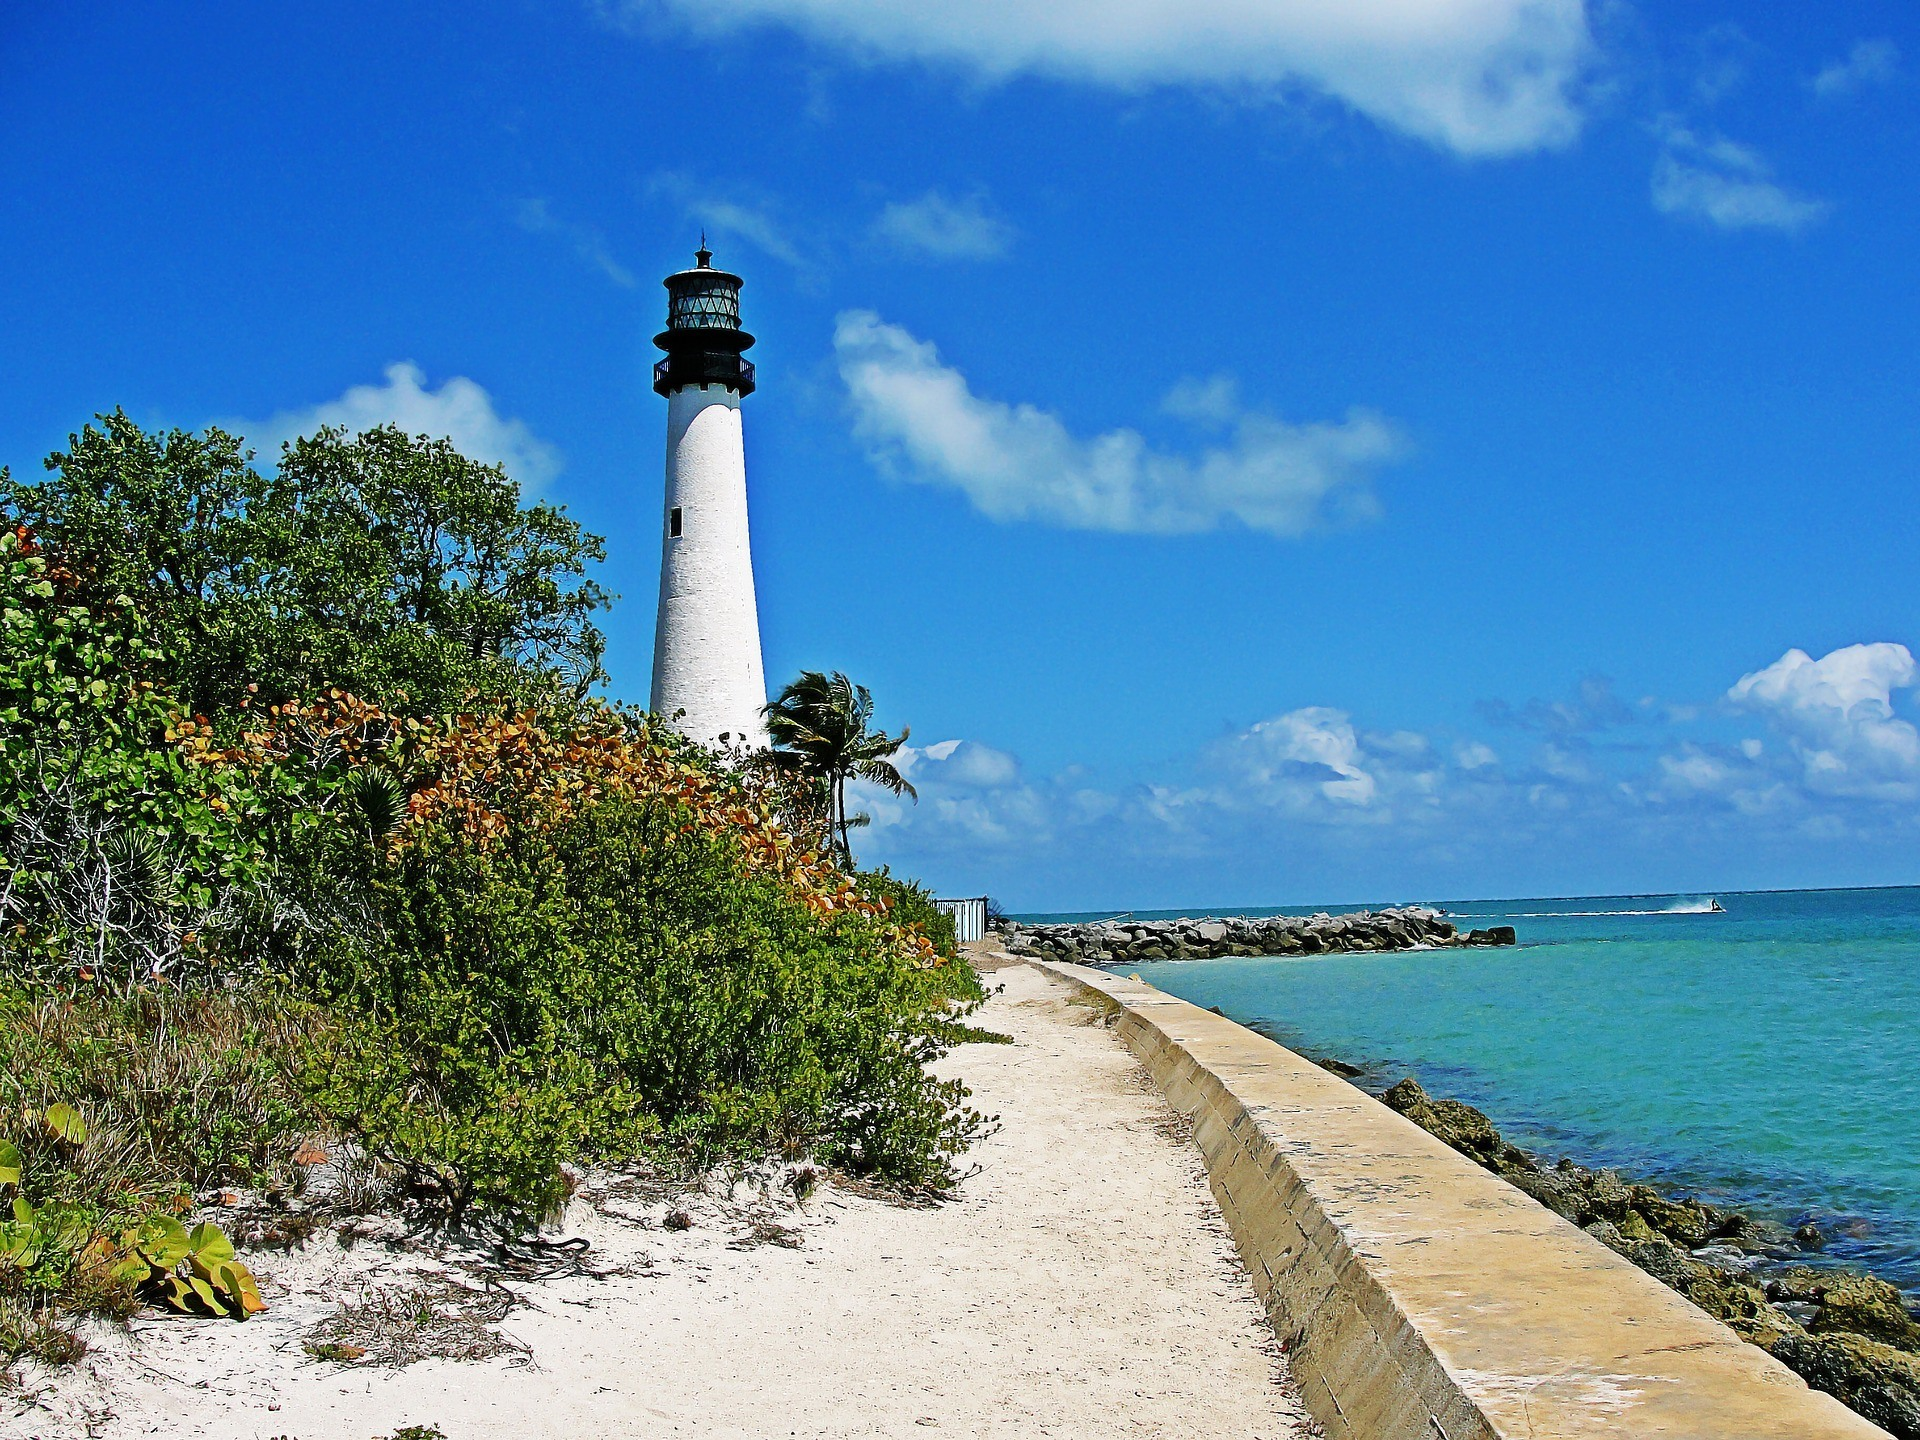 Key Biscayne - Best Place to Stay in Miami for Families